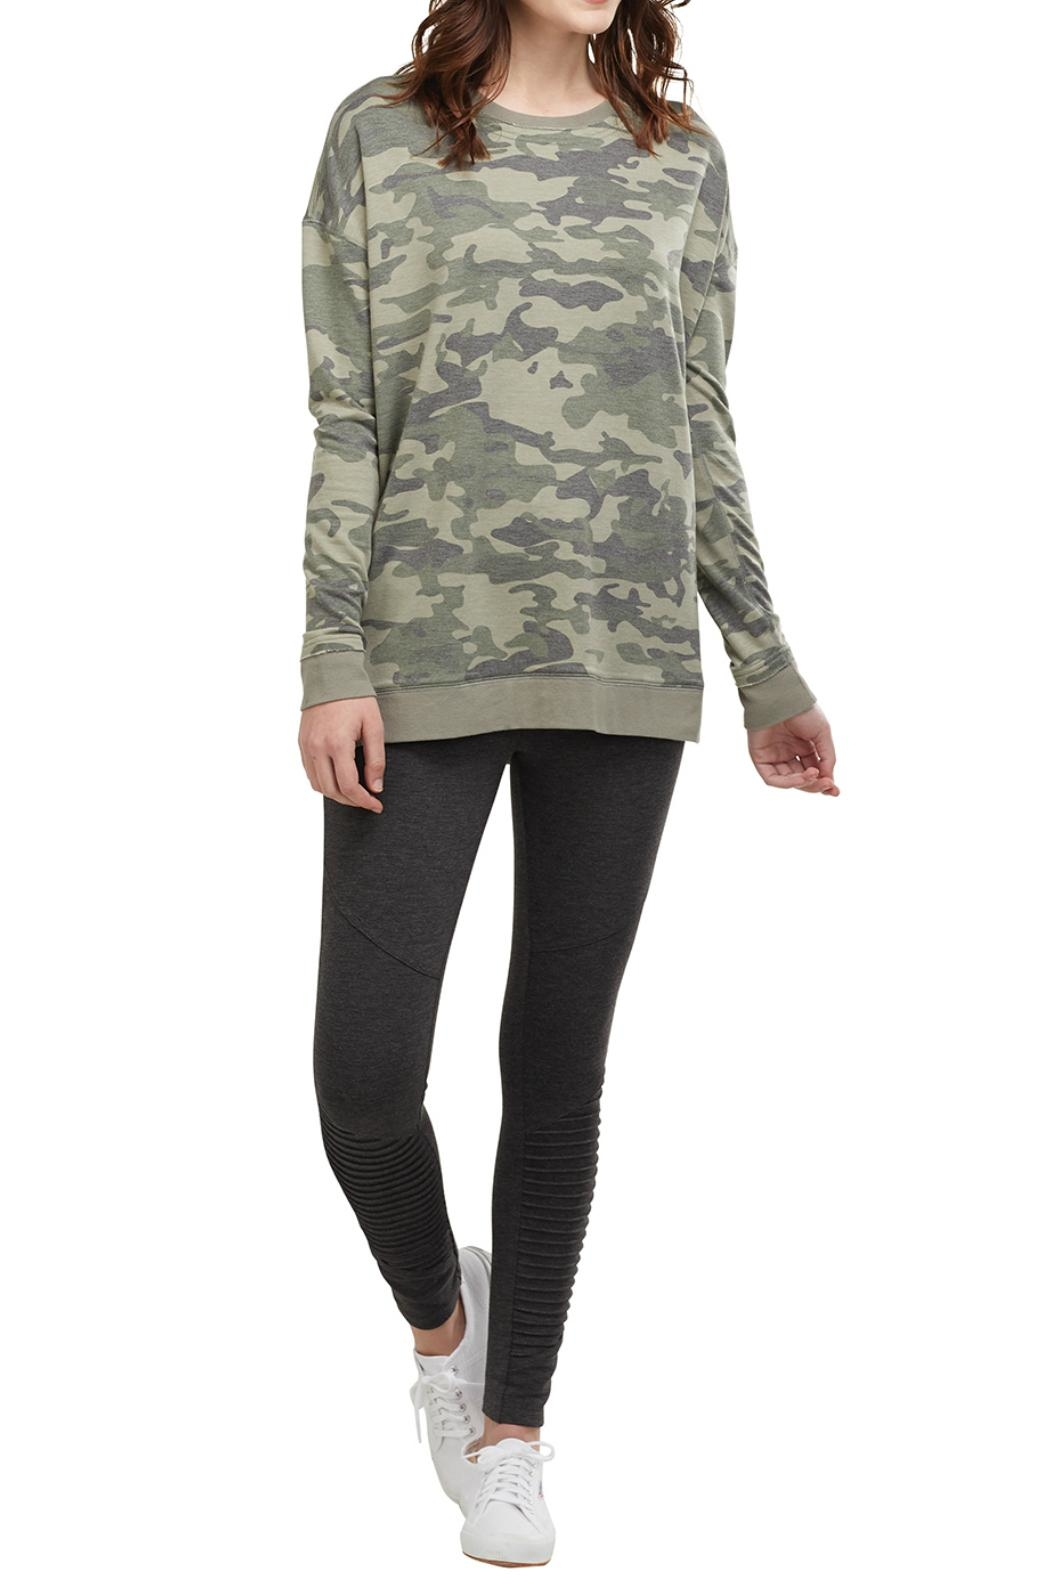 Mud Pie Camo Sweatshirt - Front Cropped Image